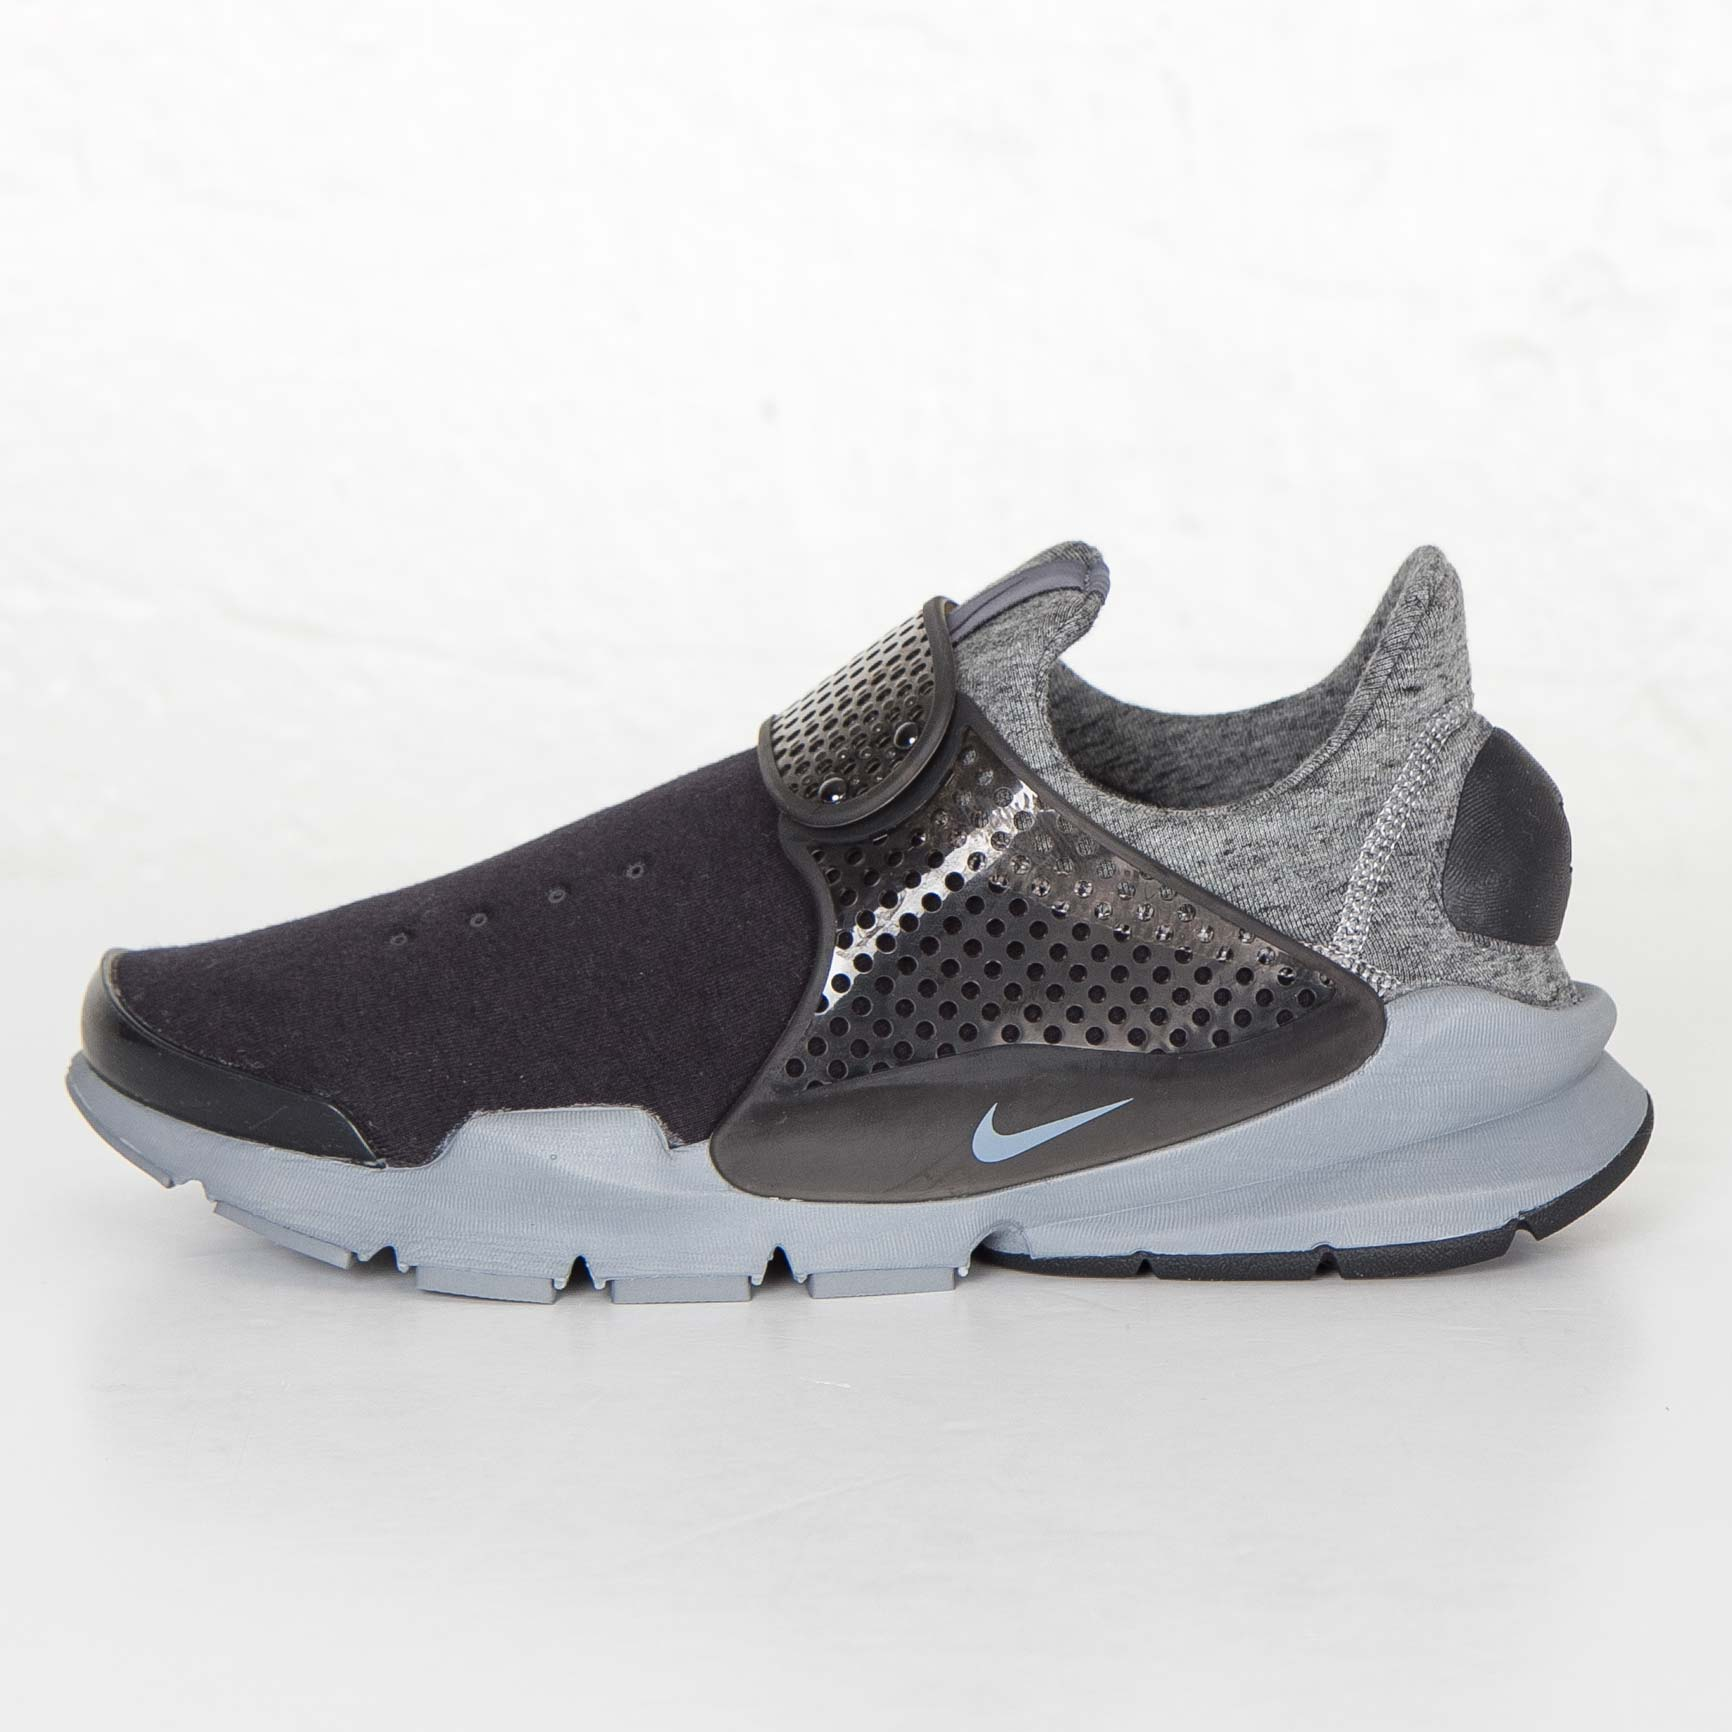 Nike Sock Dart Tech Fleece Black Cool Grey Nikelab 834669-001